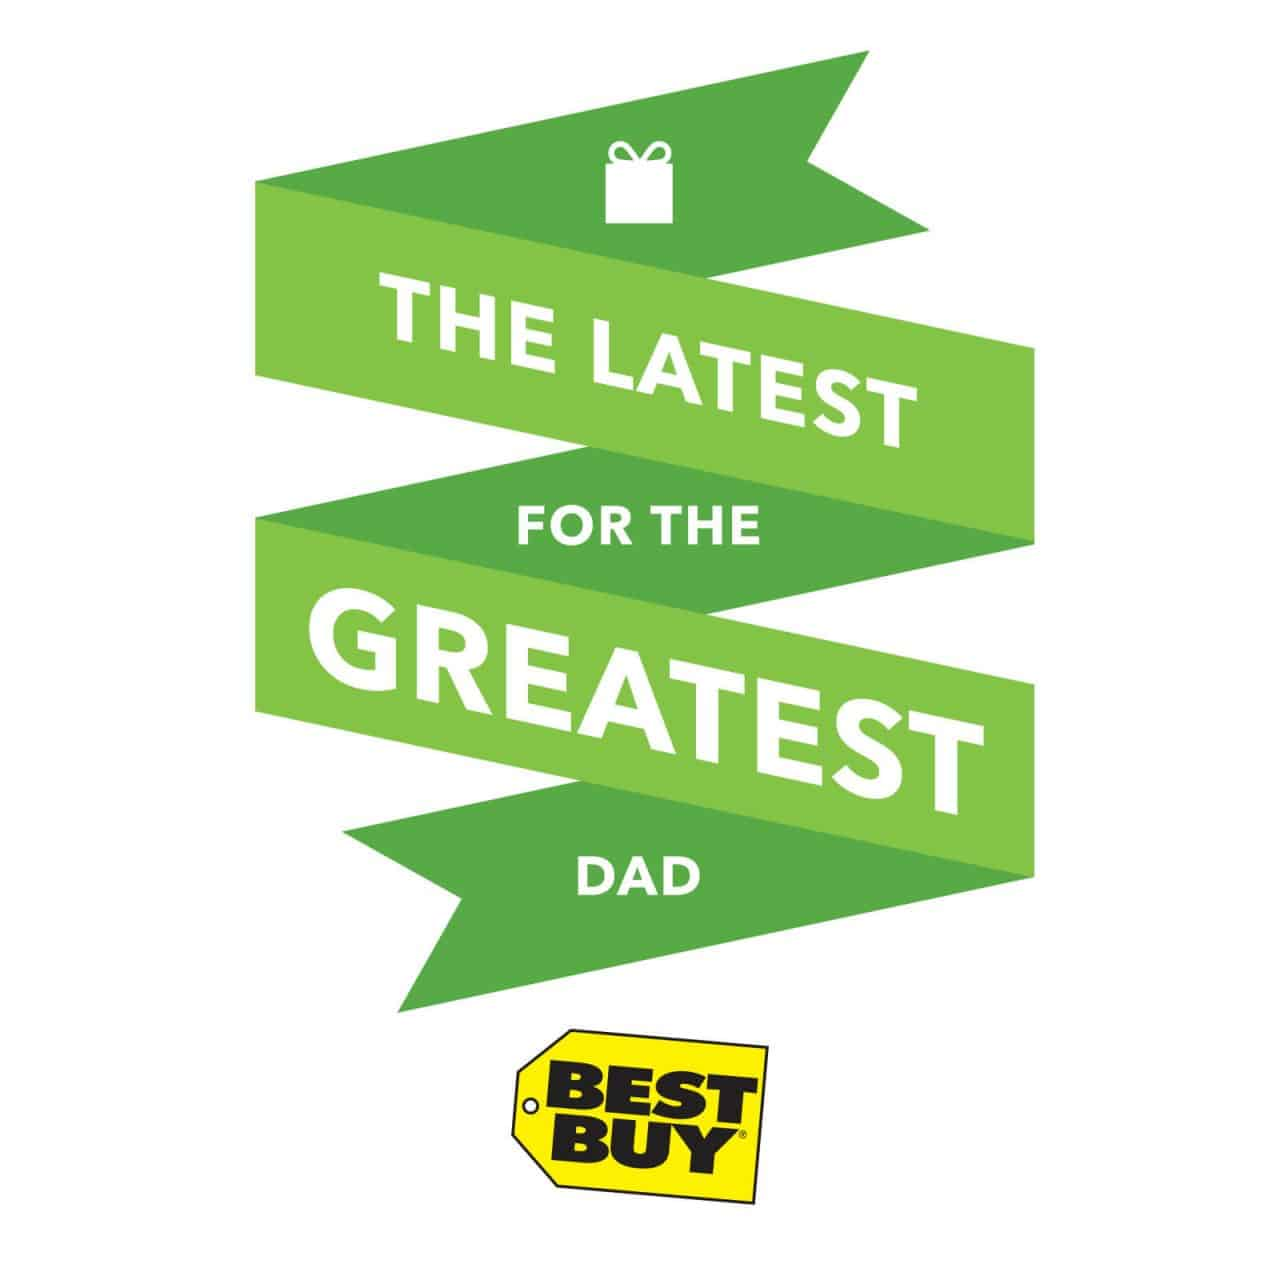 The Latest for the Greatest Dad